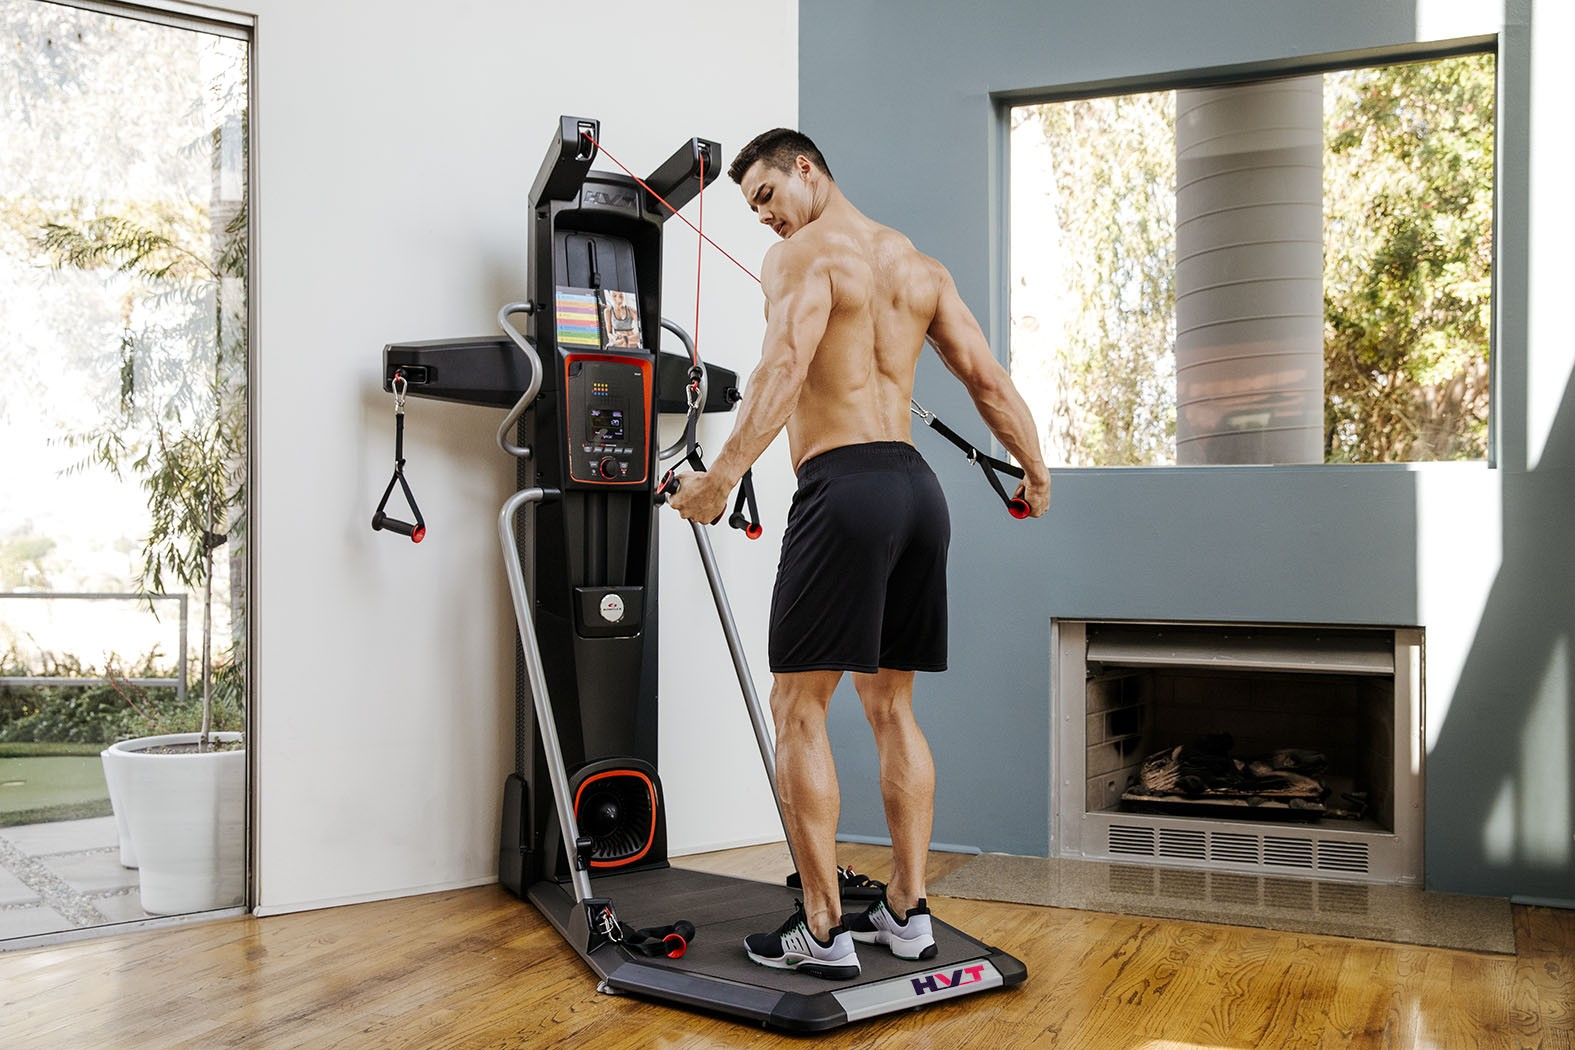 FOR THE  BOWFLEX HVT  YOU CAN FOLLOW THE GUIDE BOOK - BUT NO STUDIO CLASSES